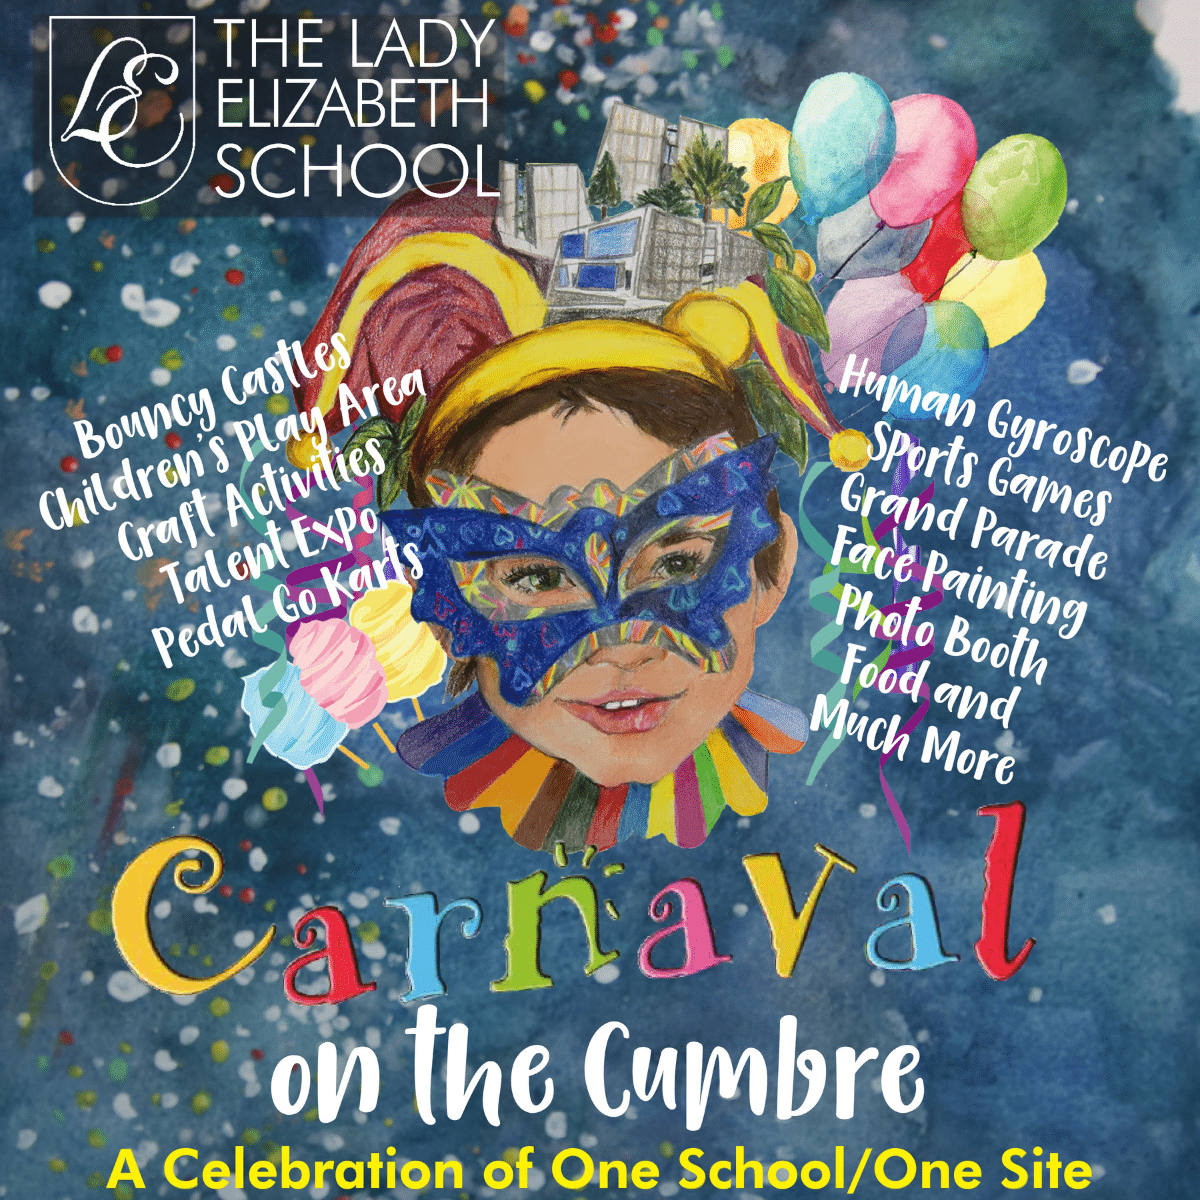 The Lady Elizabeth School invites you to its Carnaval on the Cumbre!